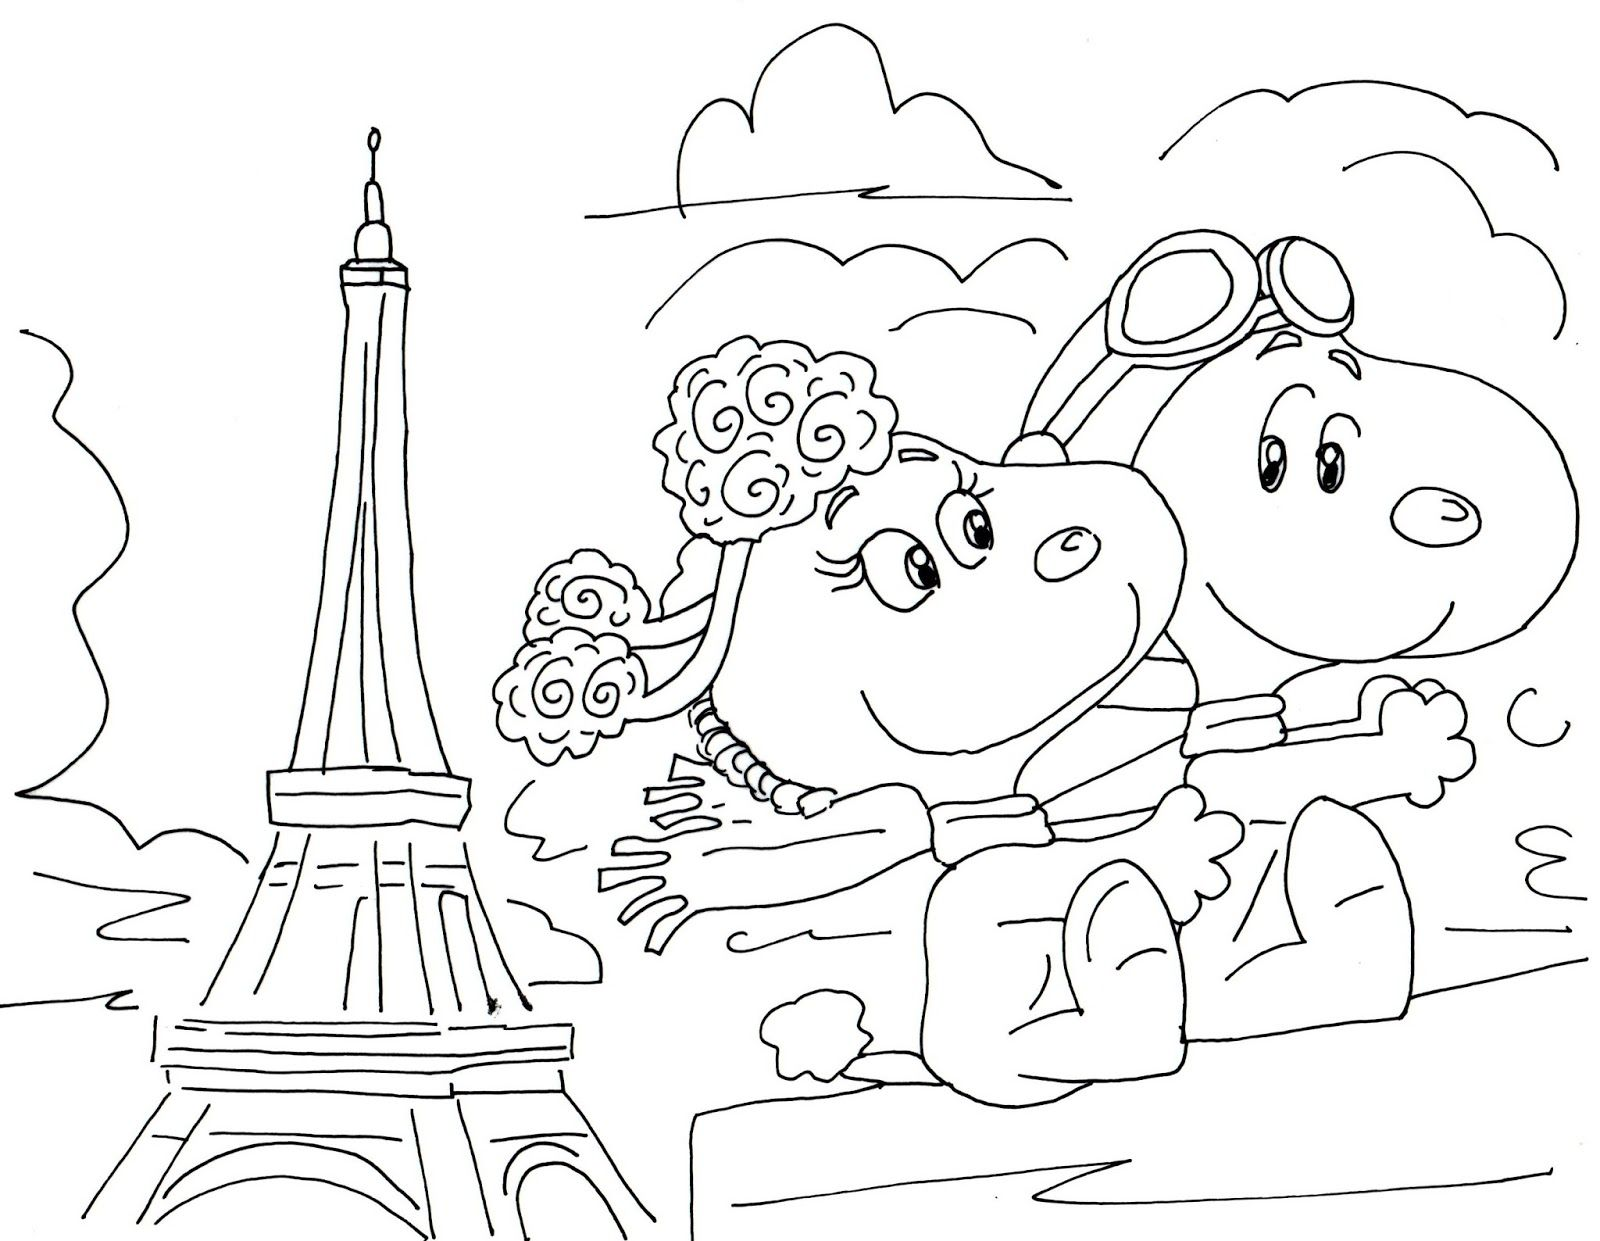 Free Charlie Brown Snoopy and Peanuts Coloring Pages: Fifi and ...